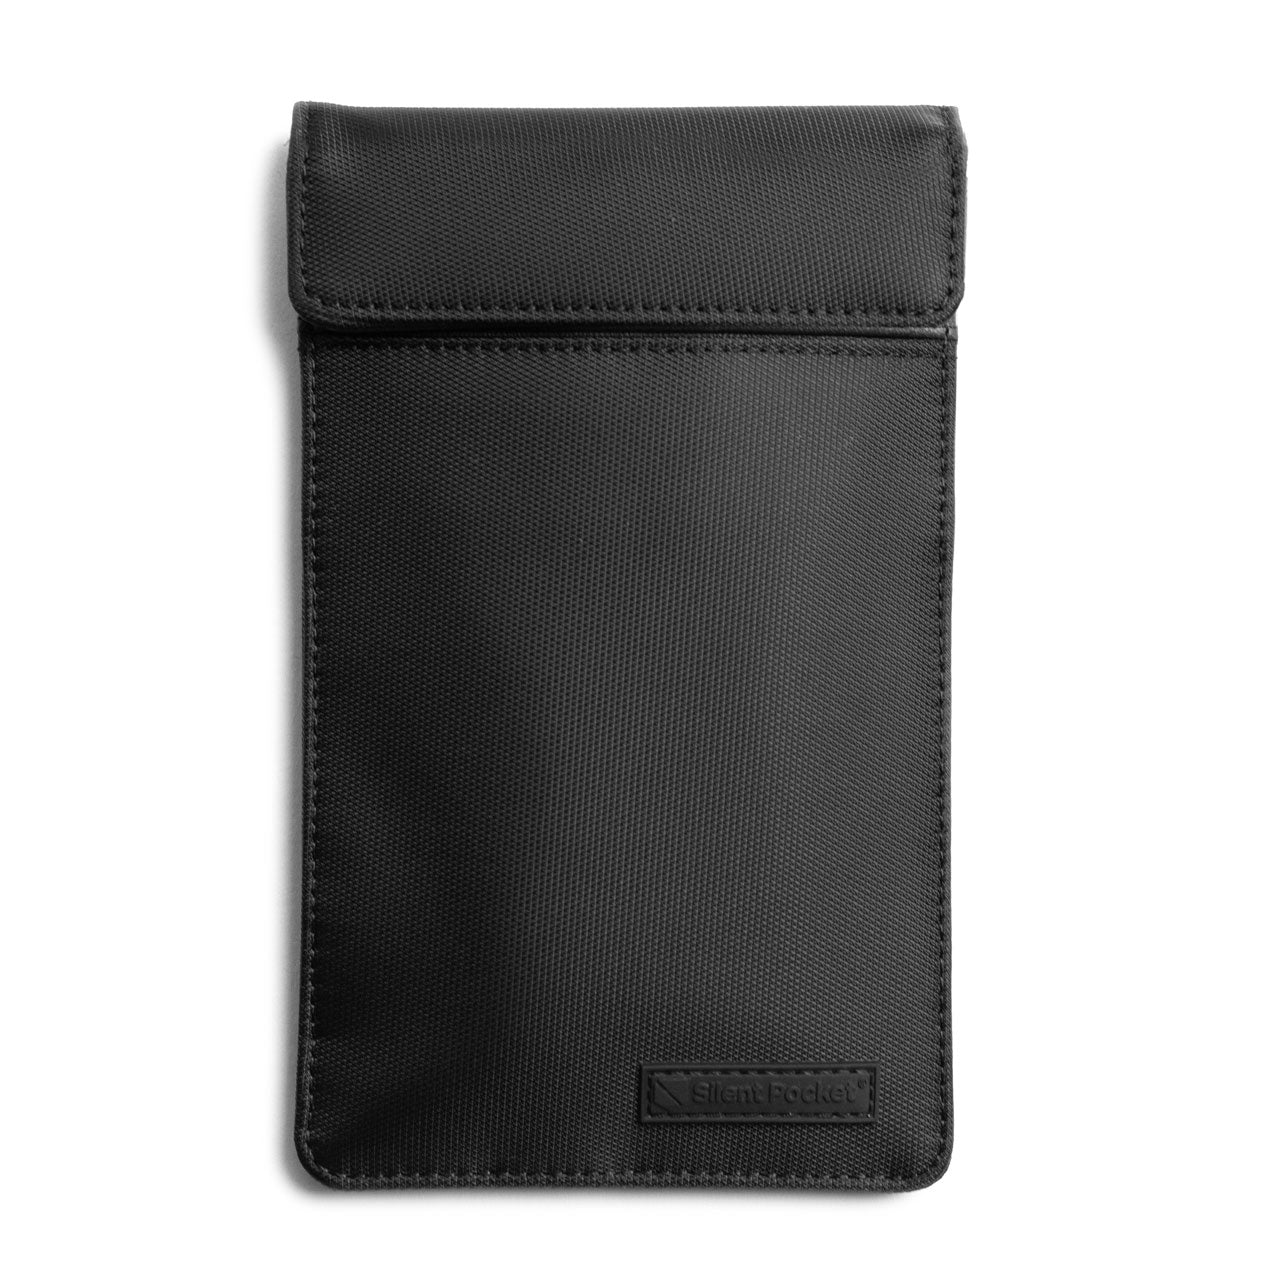 Silent Pocket Faraday Cases